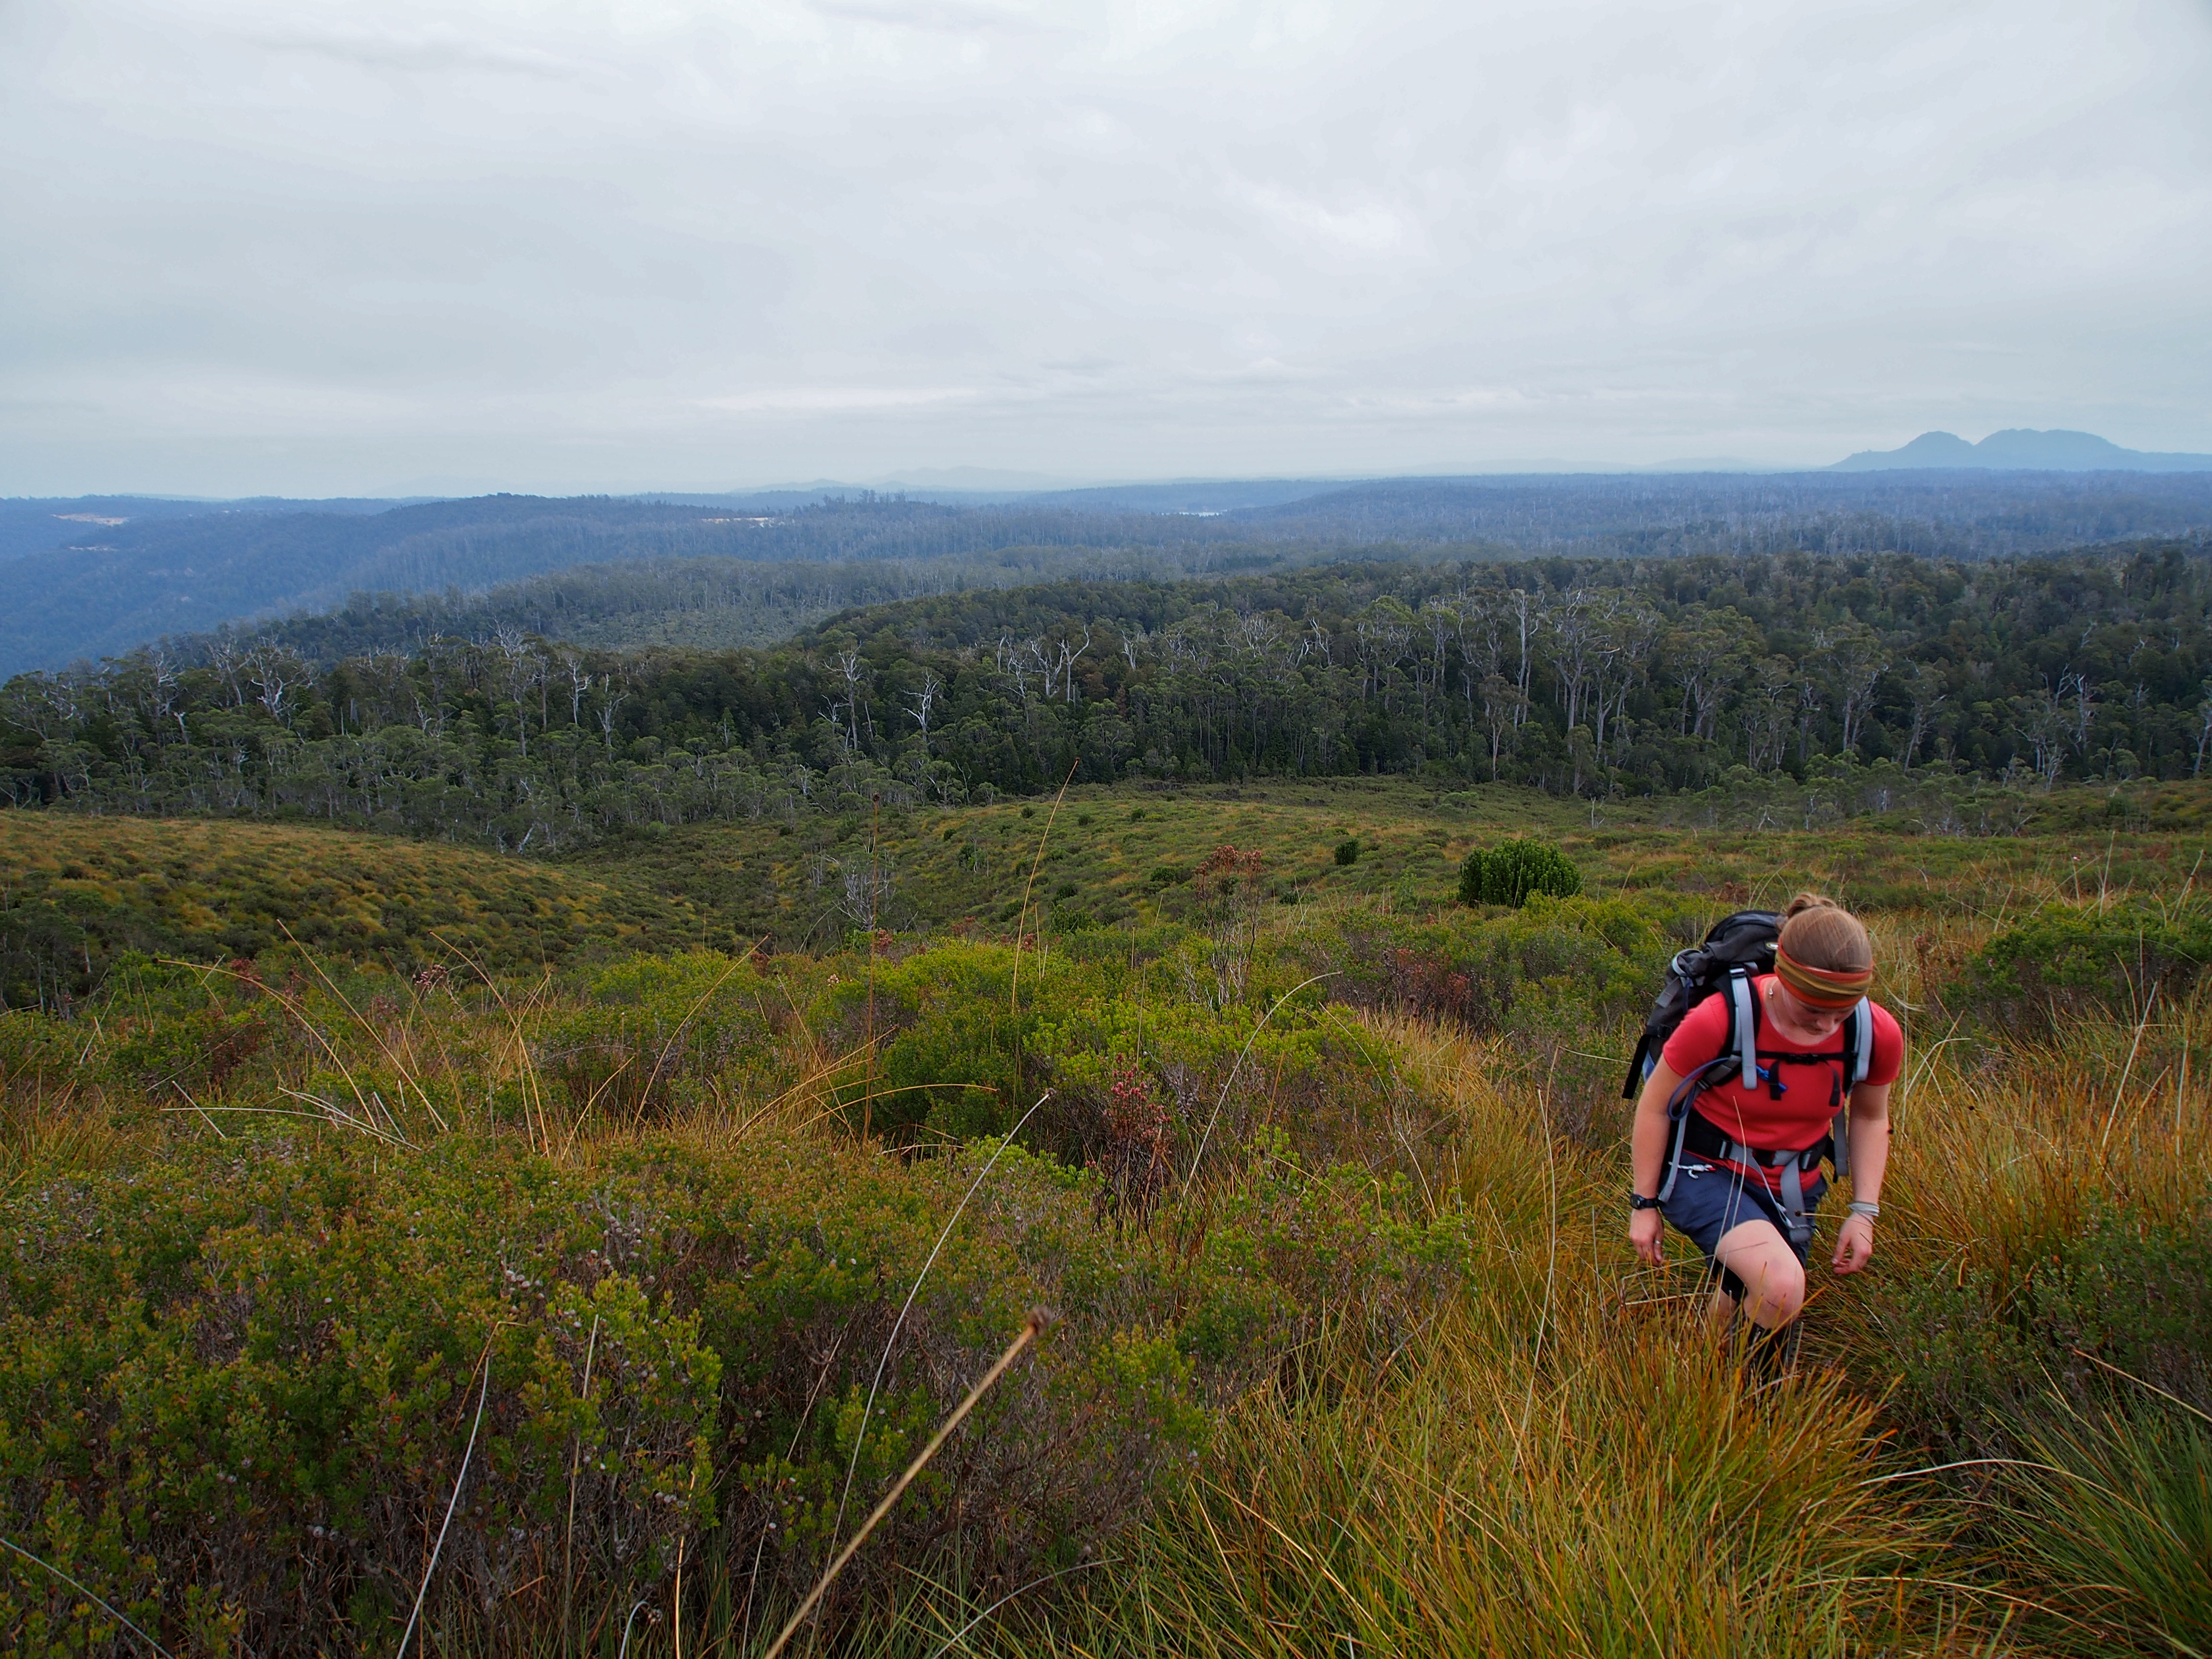 Out of the forest and onto the button grass ridges